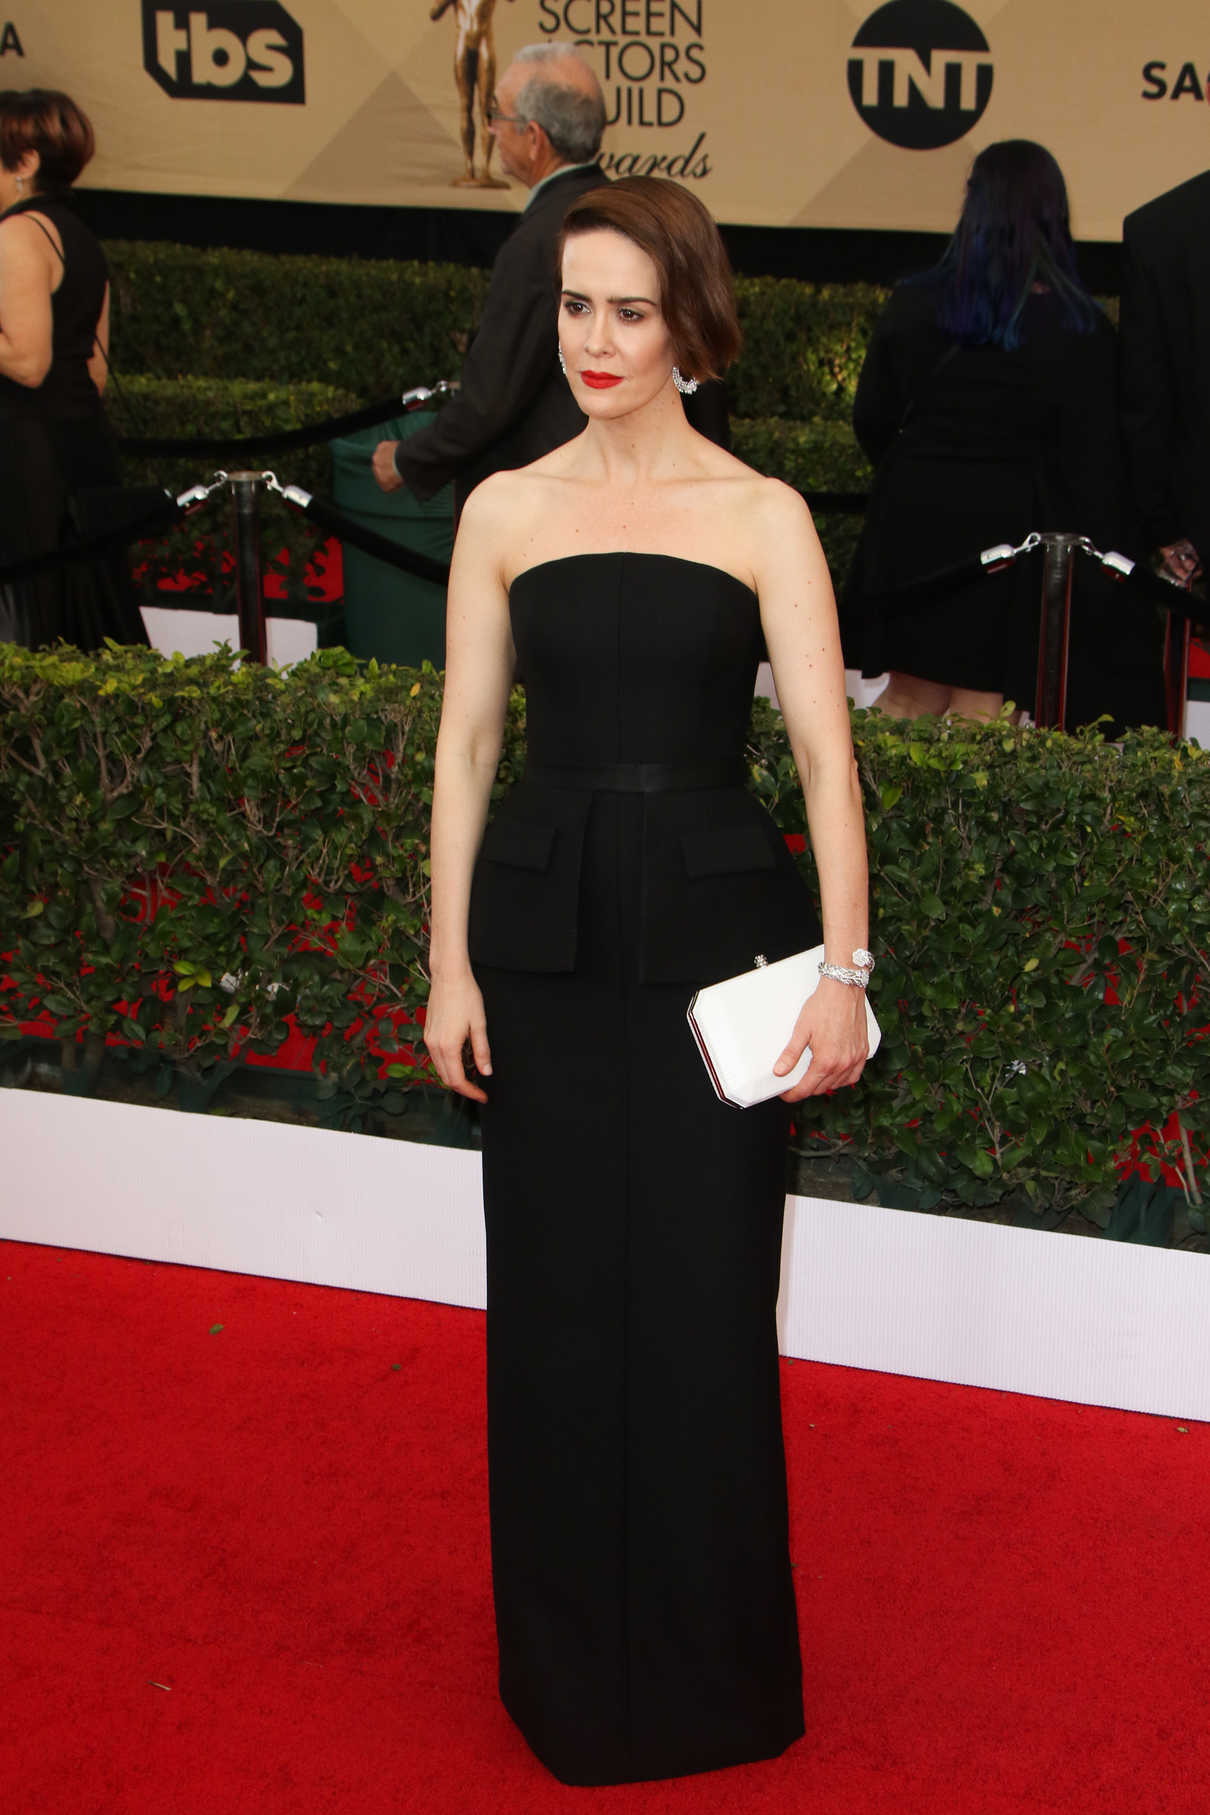 Sarah Paulson at the 23rd Annual Screen Actors Guild Awards in Los Angeles 01/29/2017